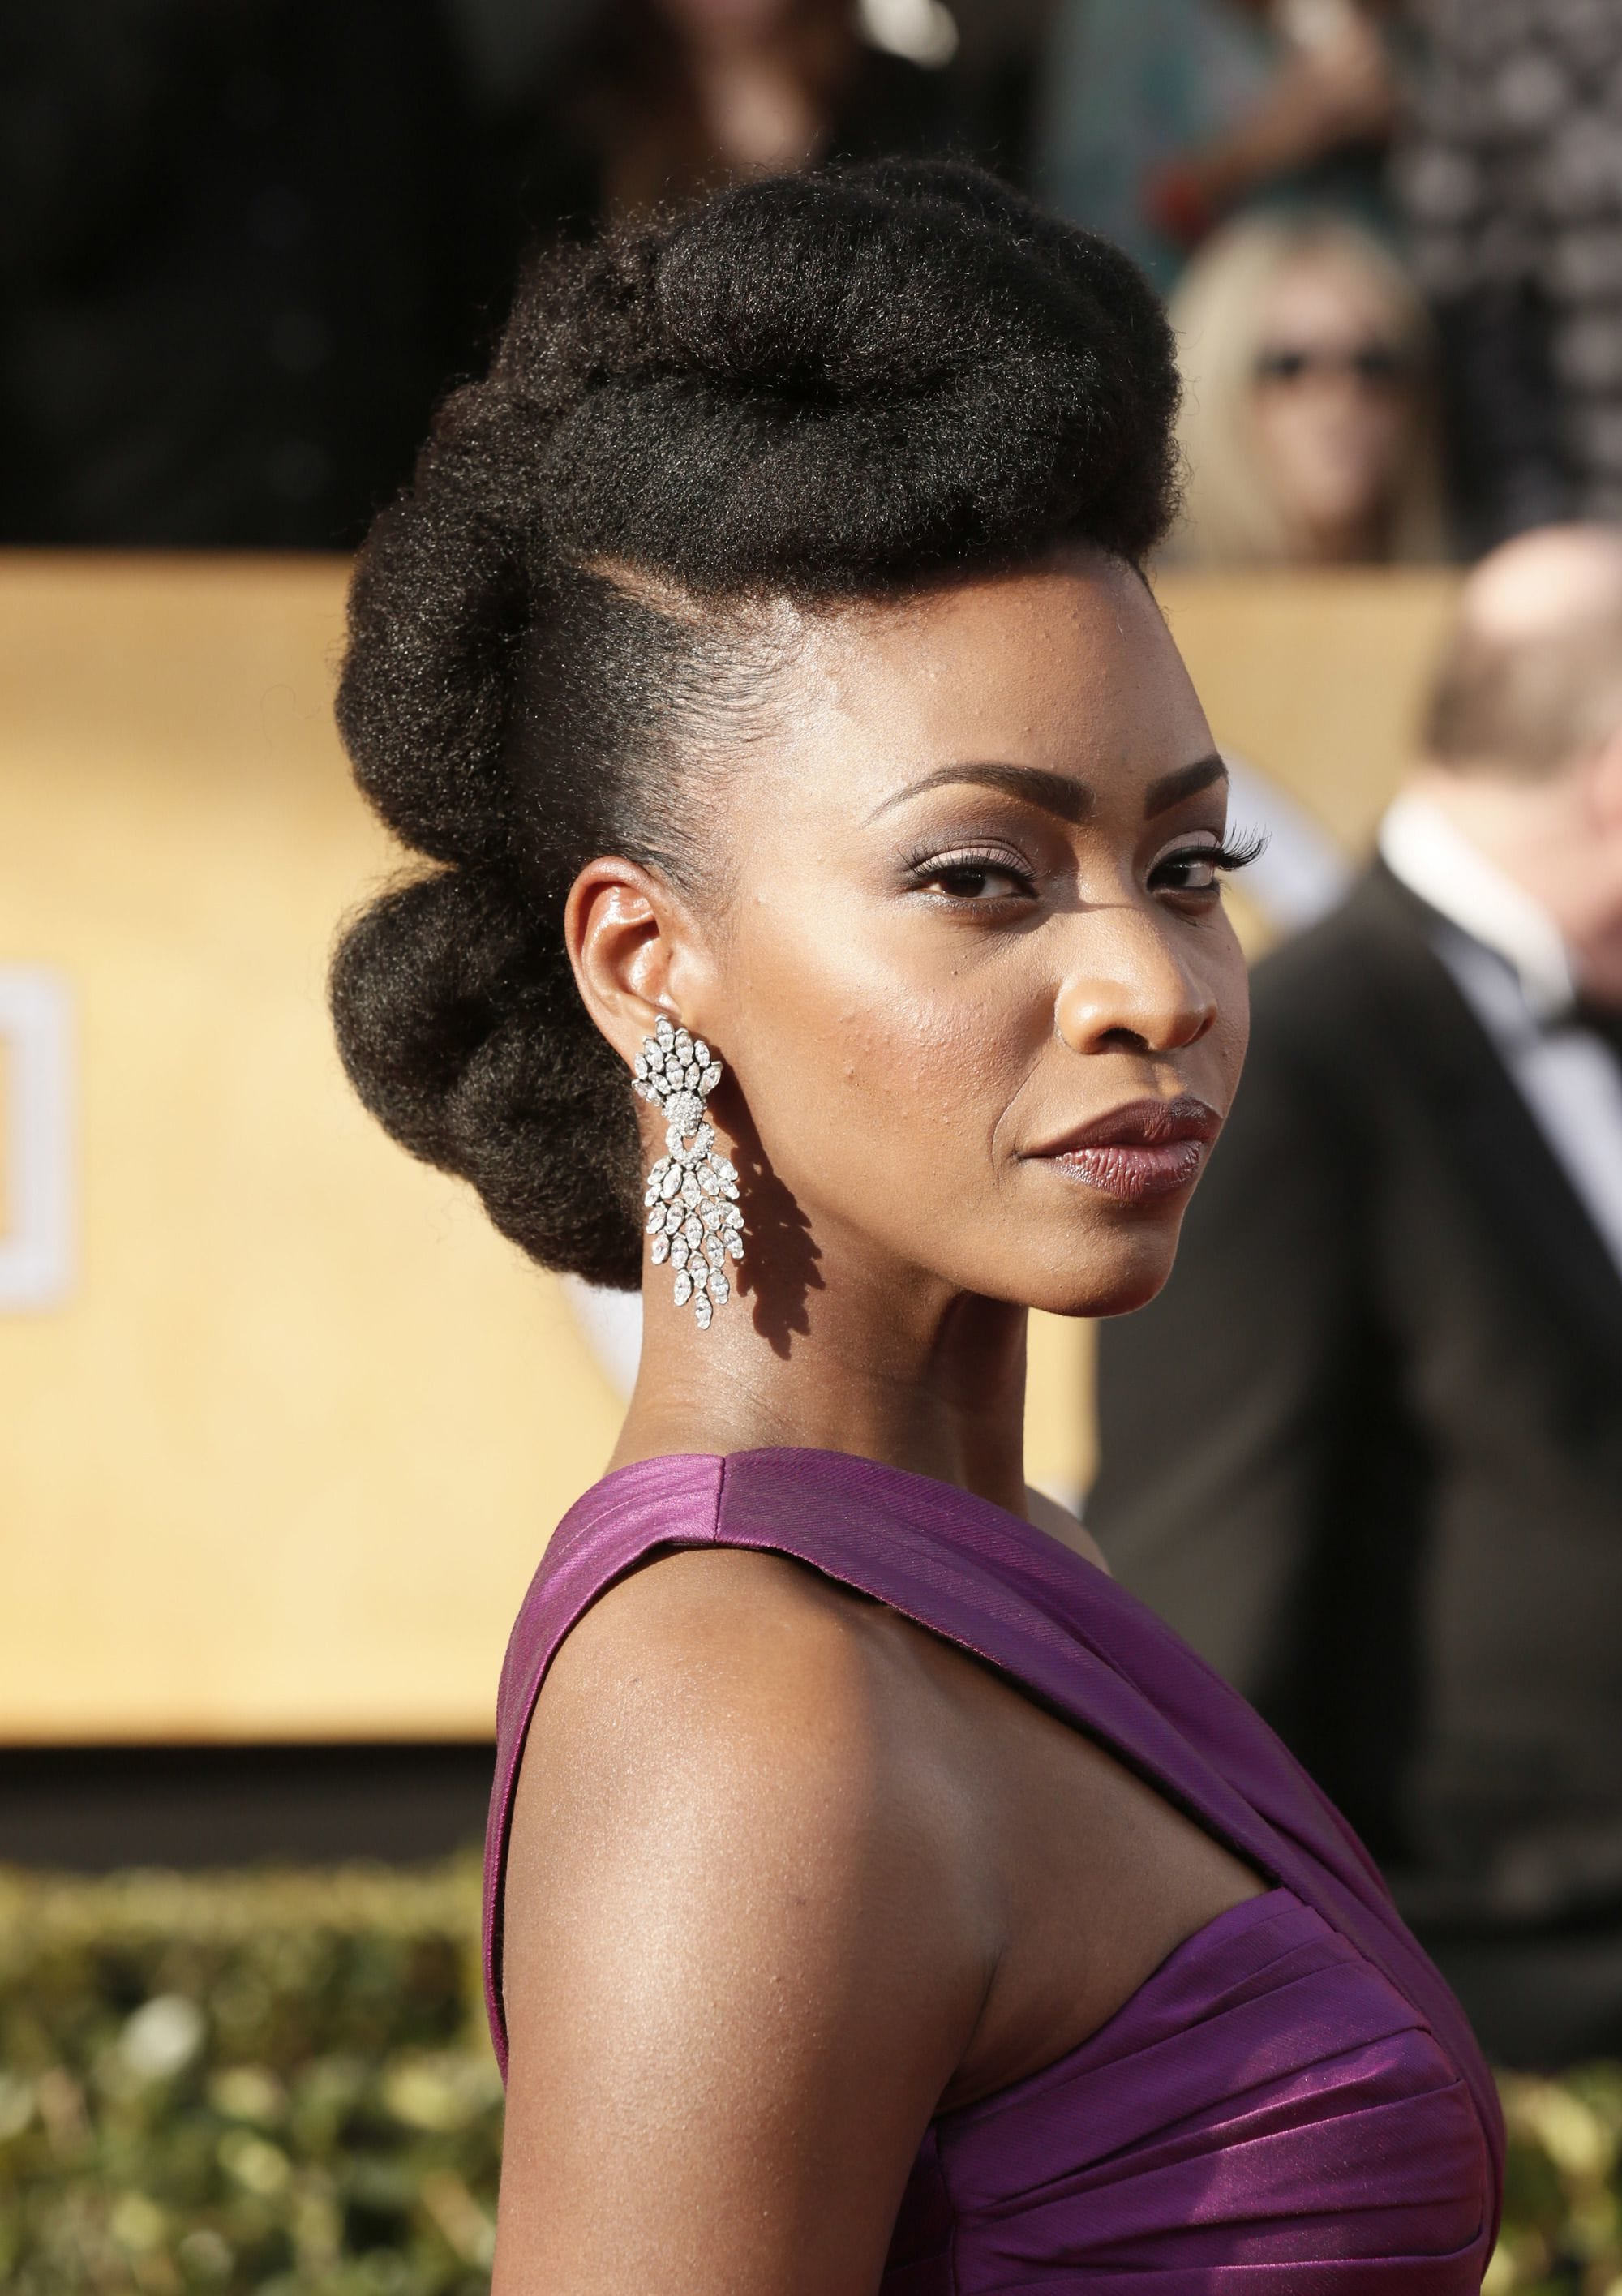 10 Mohawk Hairstyles For Black Women You Seriously Need To Try (View 13 of 20)